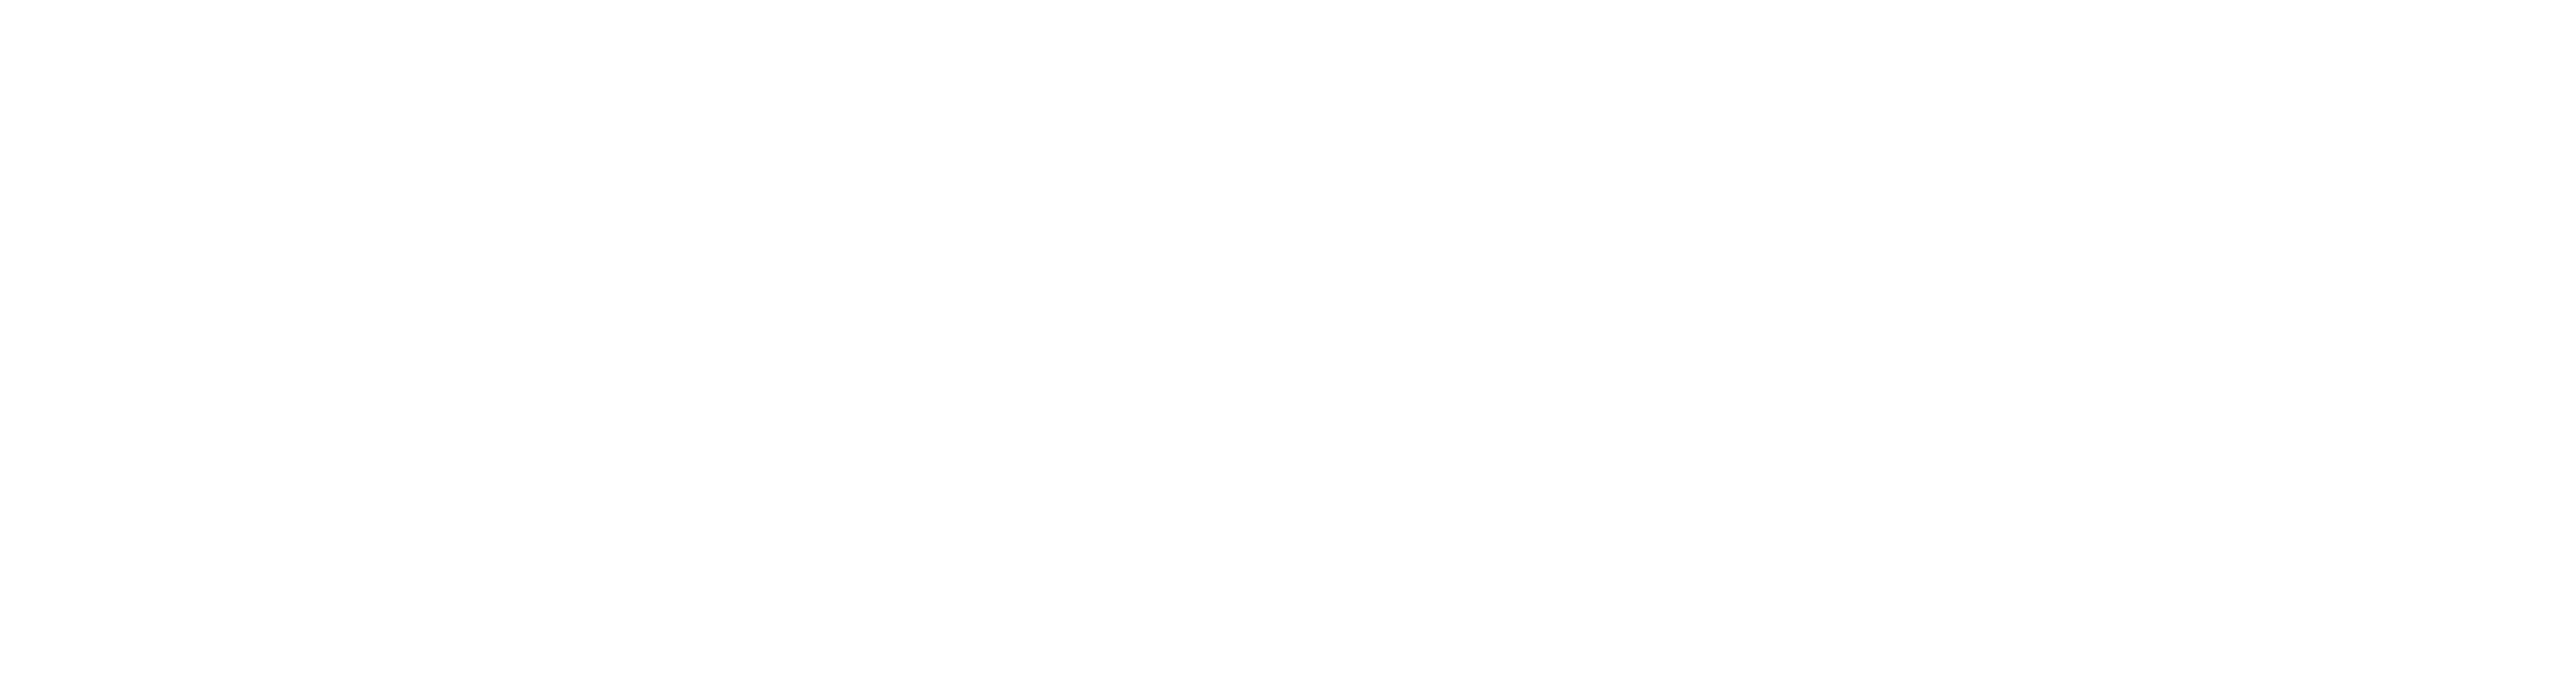 CIPS Breakfast Briefing - Digitally Transforming Supply logo